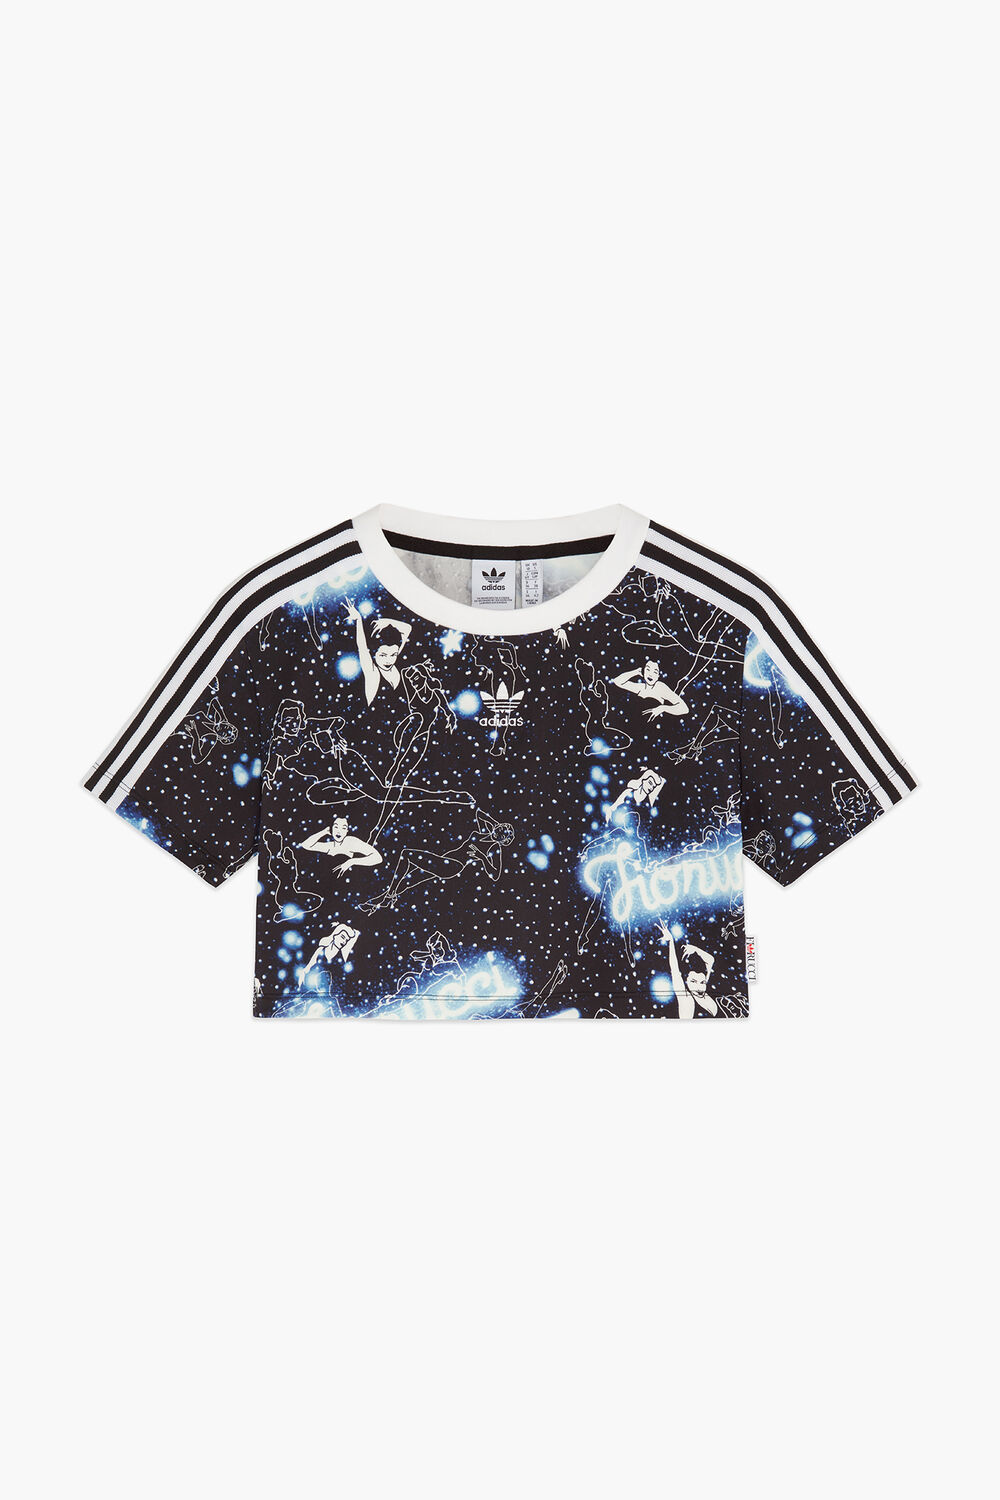 Adidas x Fiorucci Night Crop T-Shirt Black